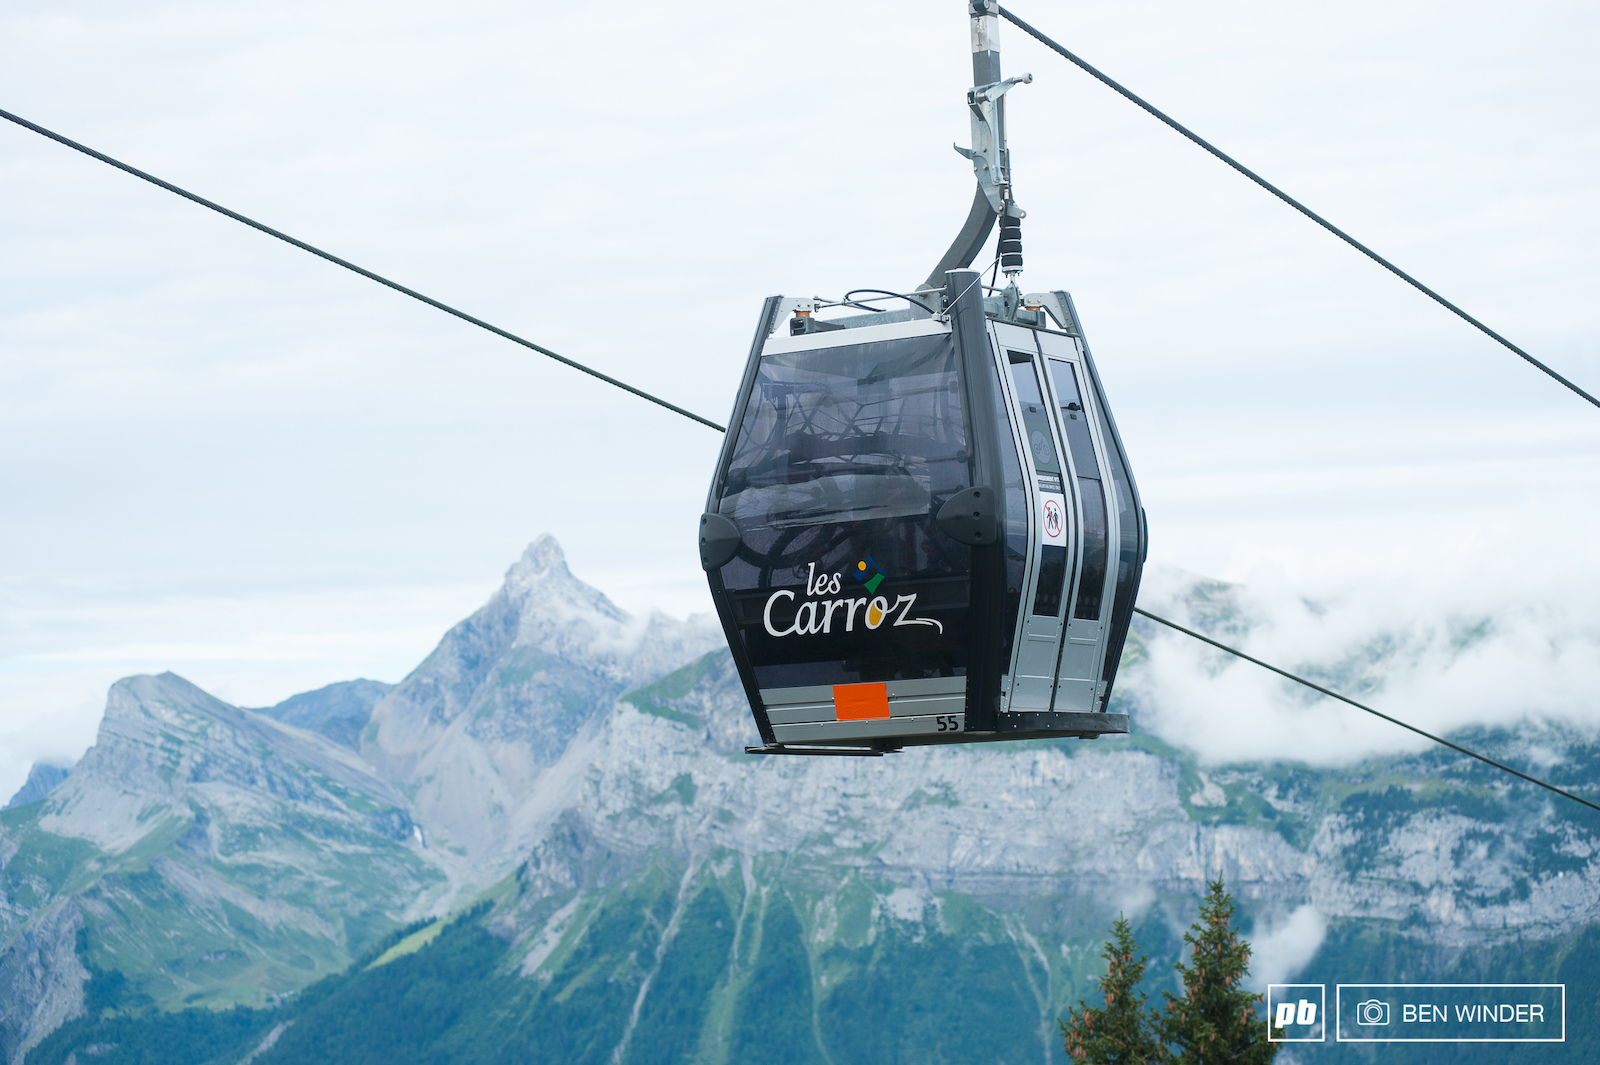 French Downhill Champs in Les Carroz.